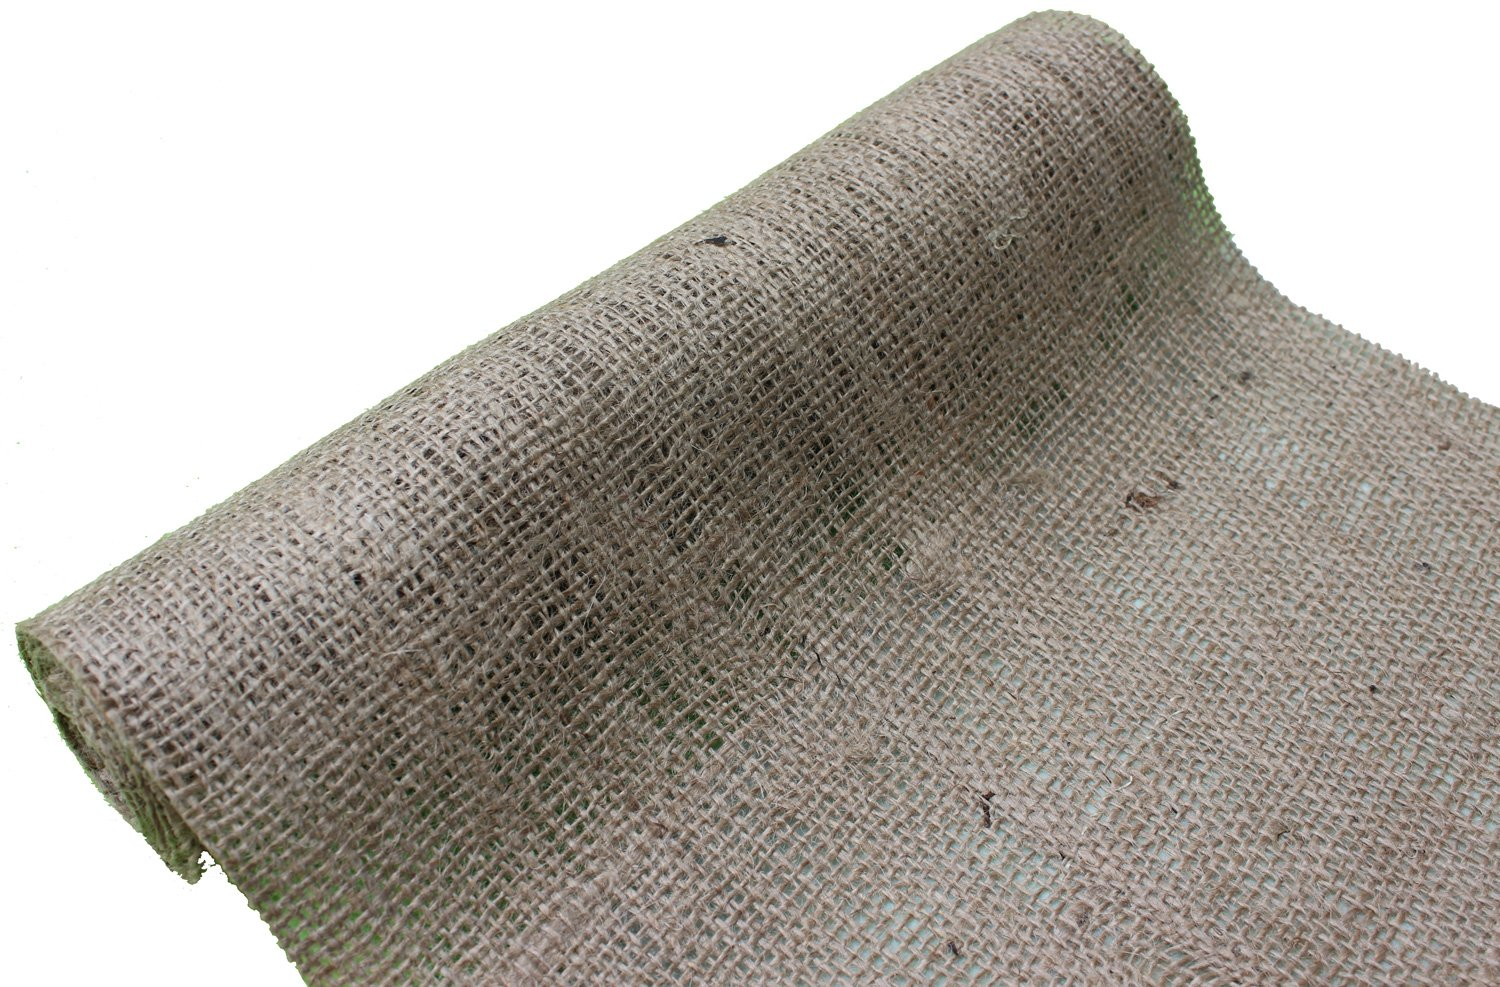 Burlapper Burlap, 12'' x 108'', 100% Natural 12 oz Jute Fabric